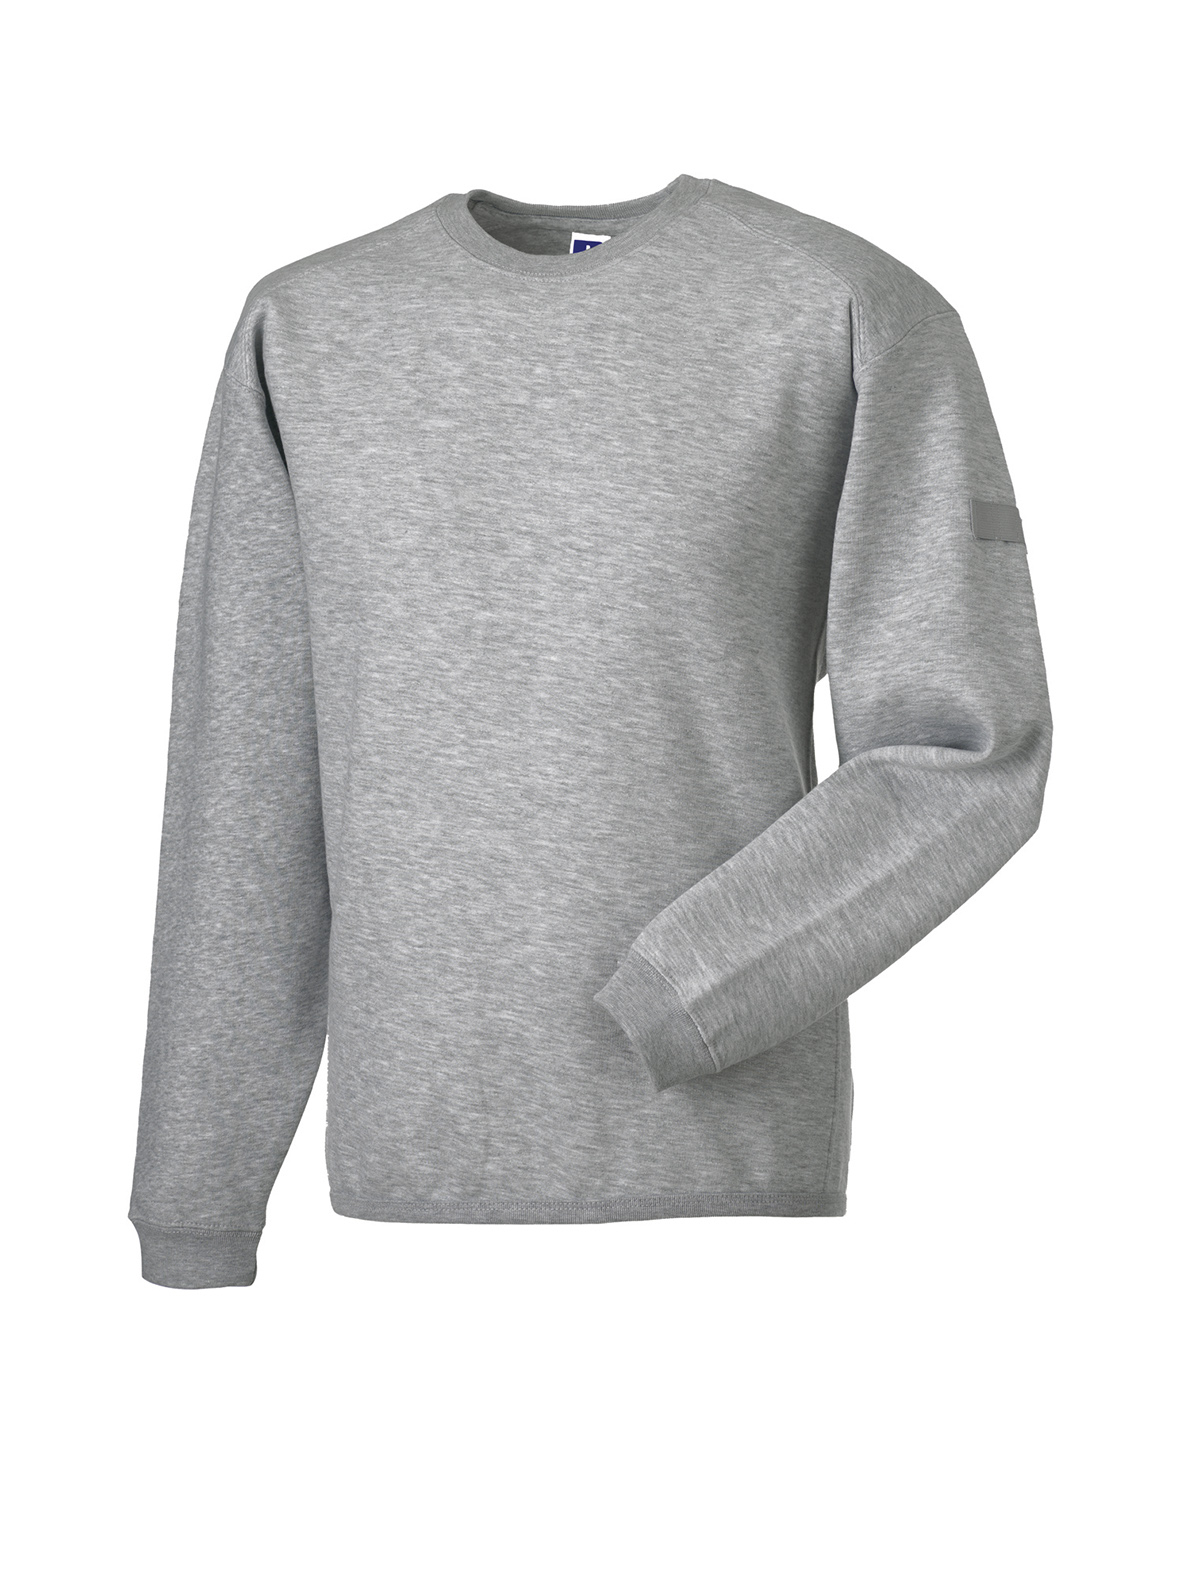 Sweatshirt Workwear